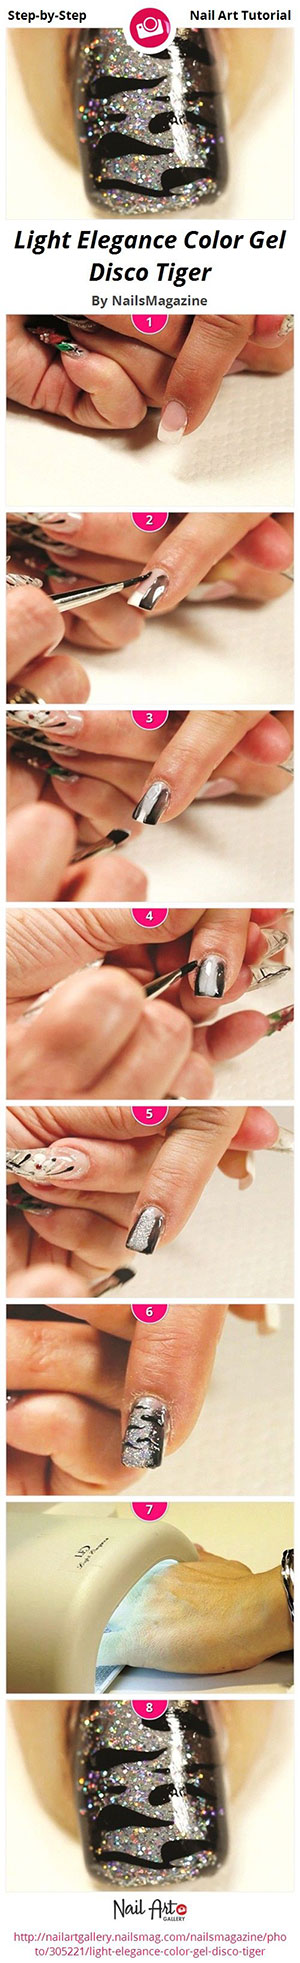 Easy-Simple-Step-By-Step-Gel-Nail-Art-Tutorials-For-Beginners-Learners-2014-9